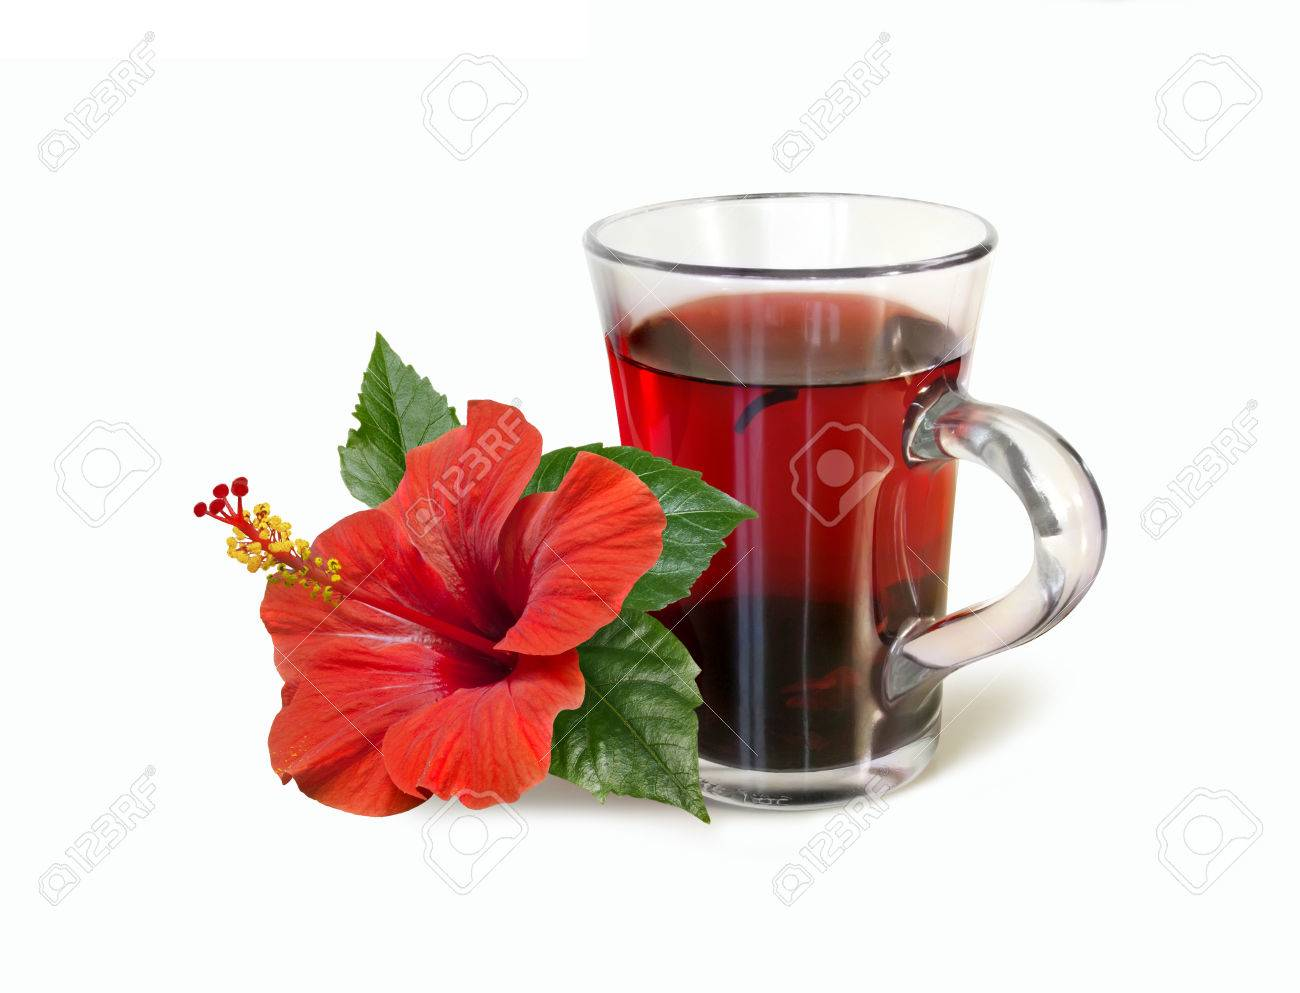 Red Hibiscus Tea Drink And Bright Large Flower Isolated On White